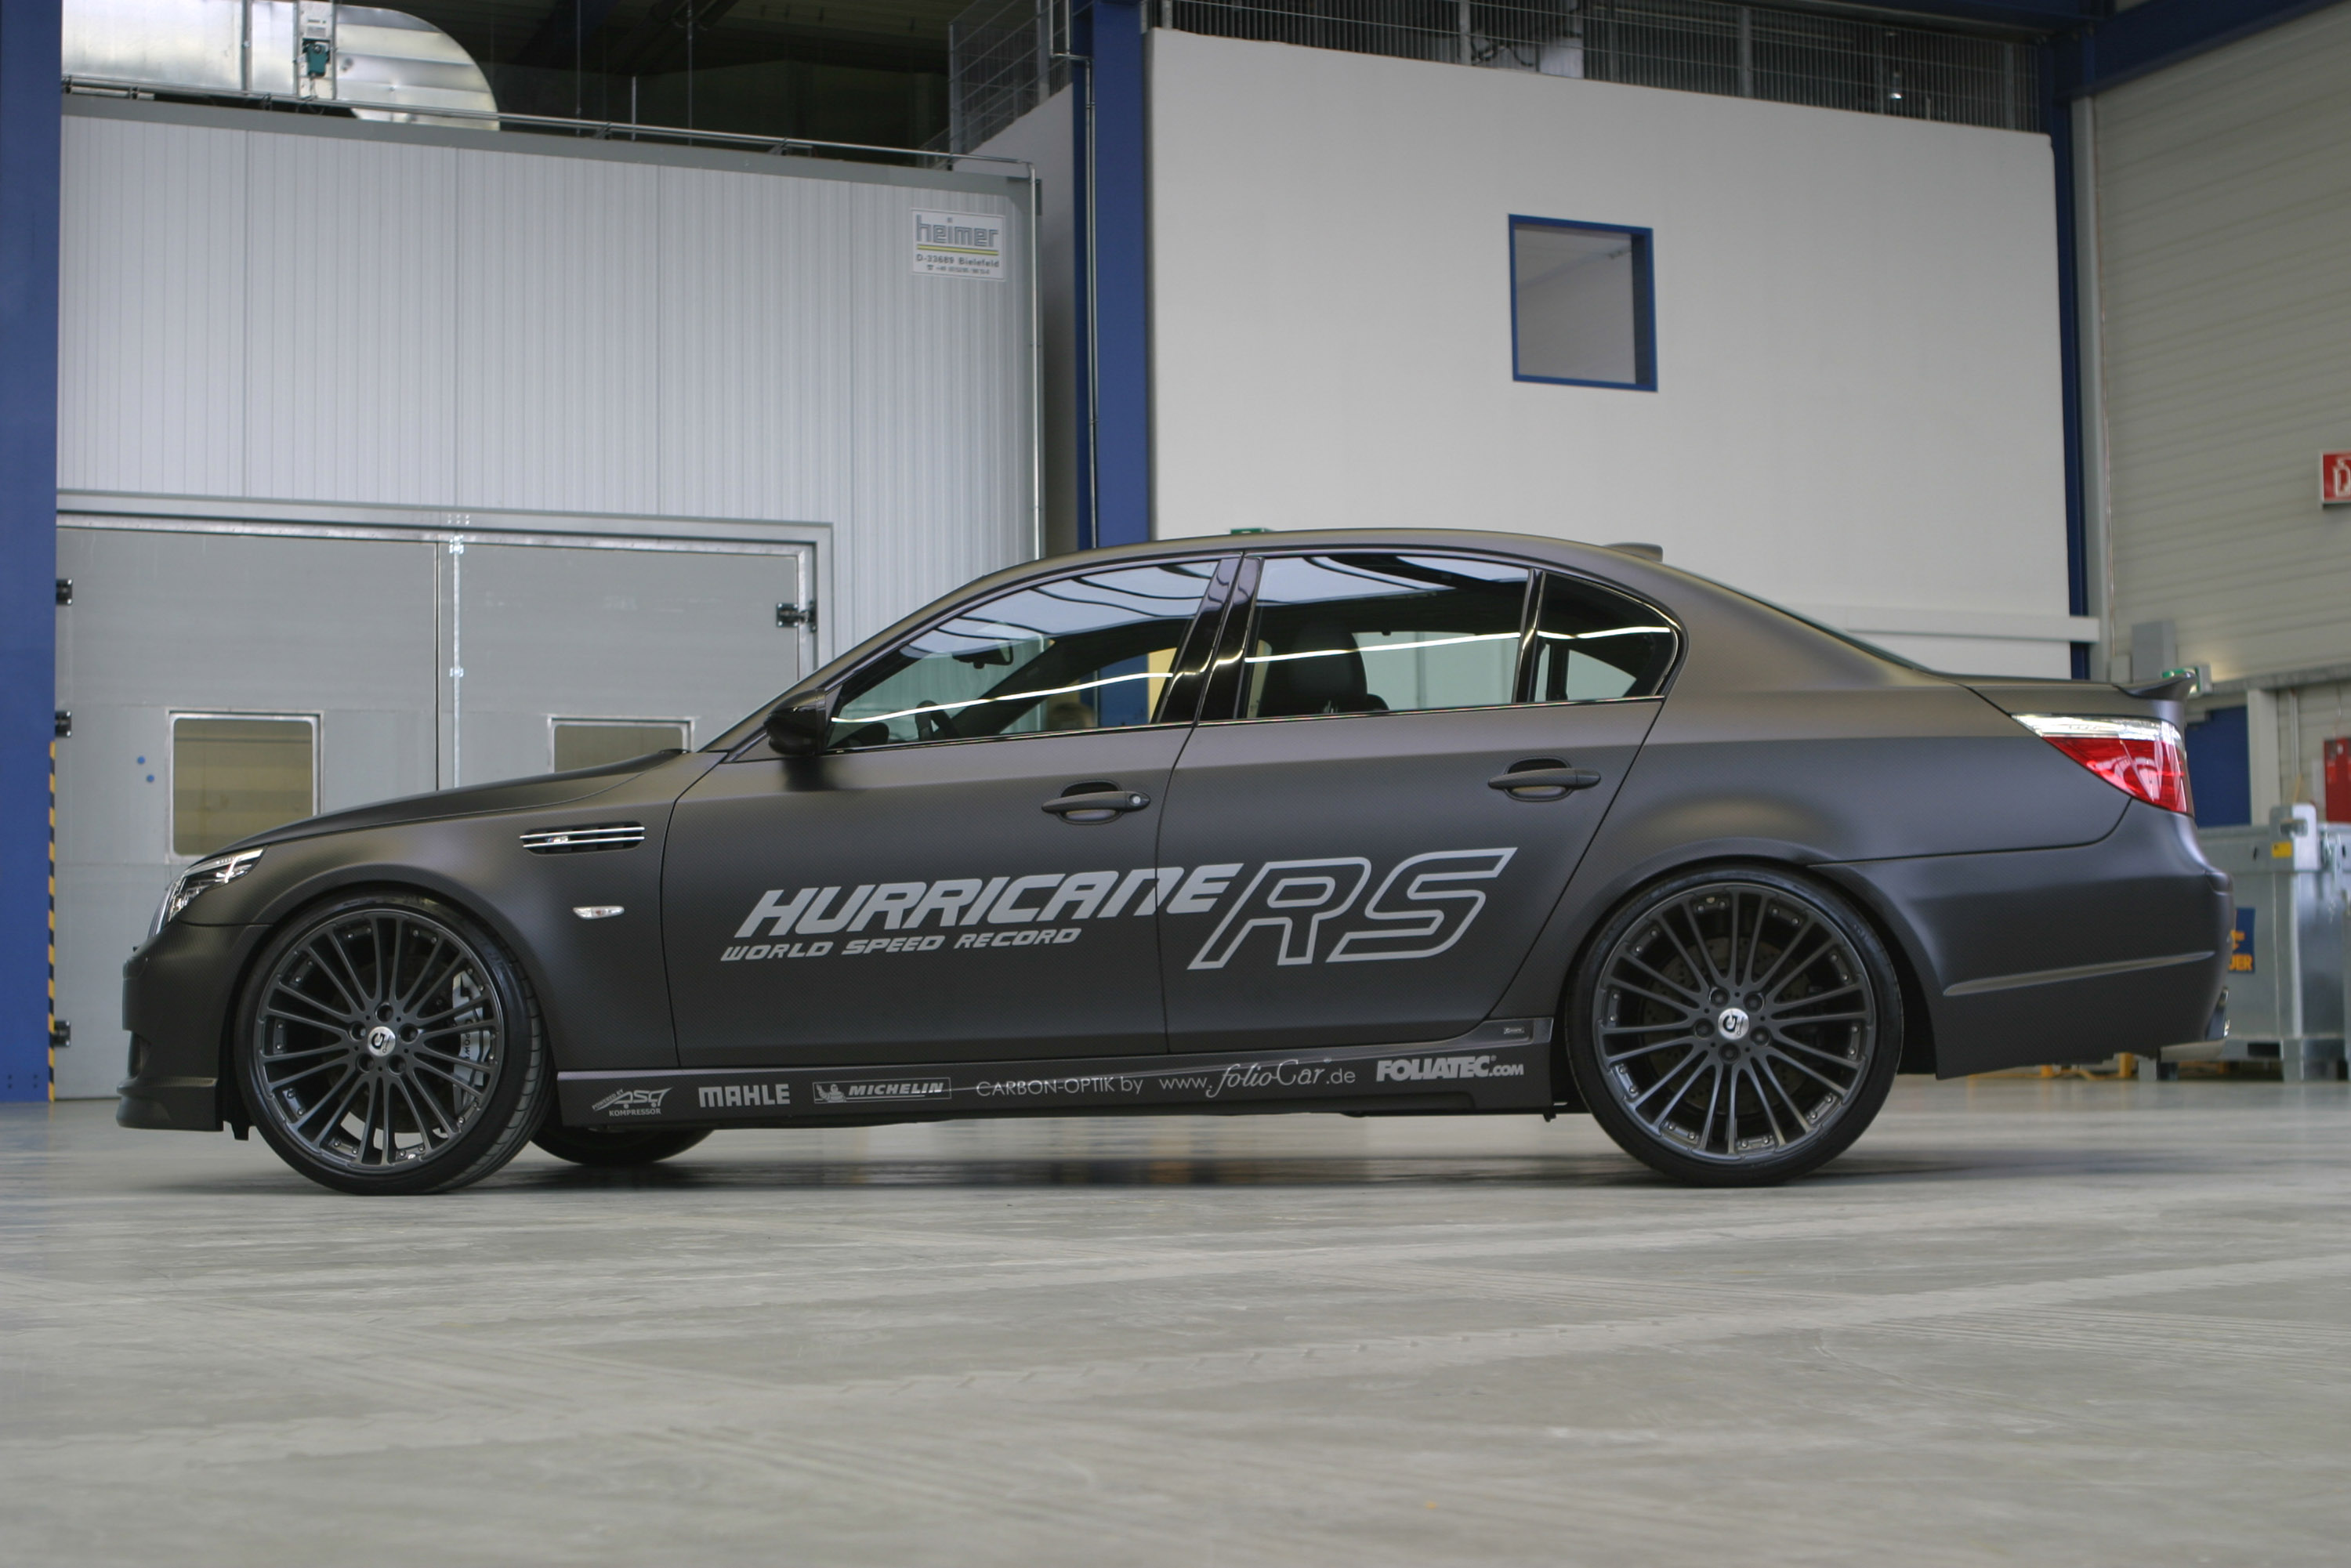 G Power Hurricane Rs Bmw M5 Touring 359 Km H Video